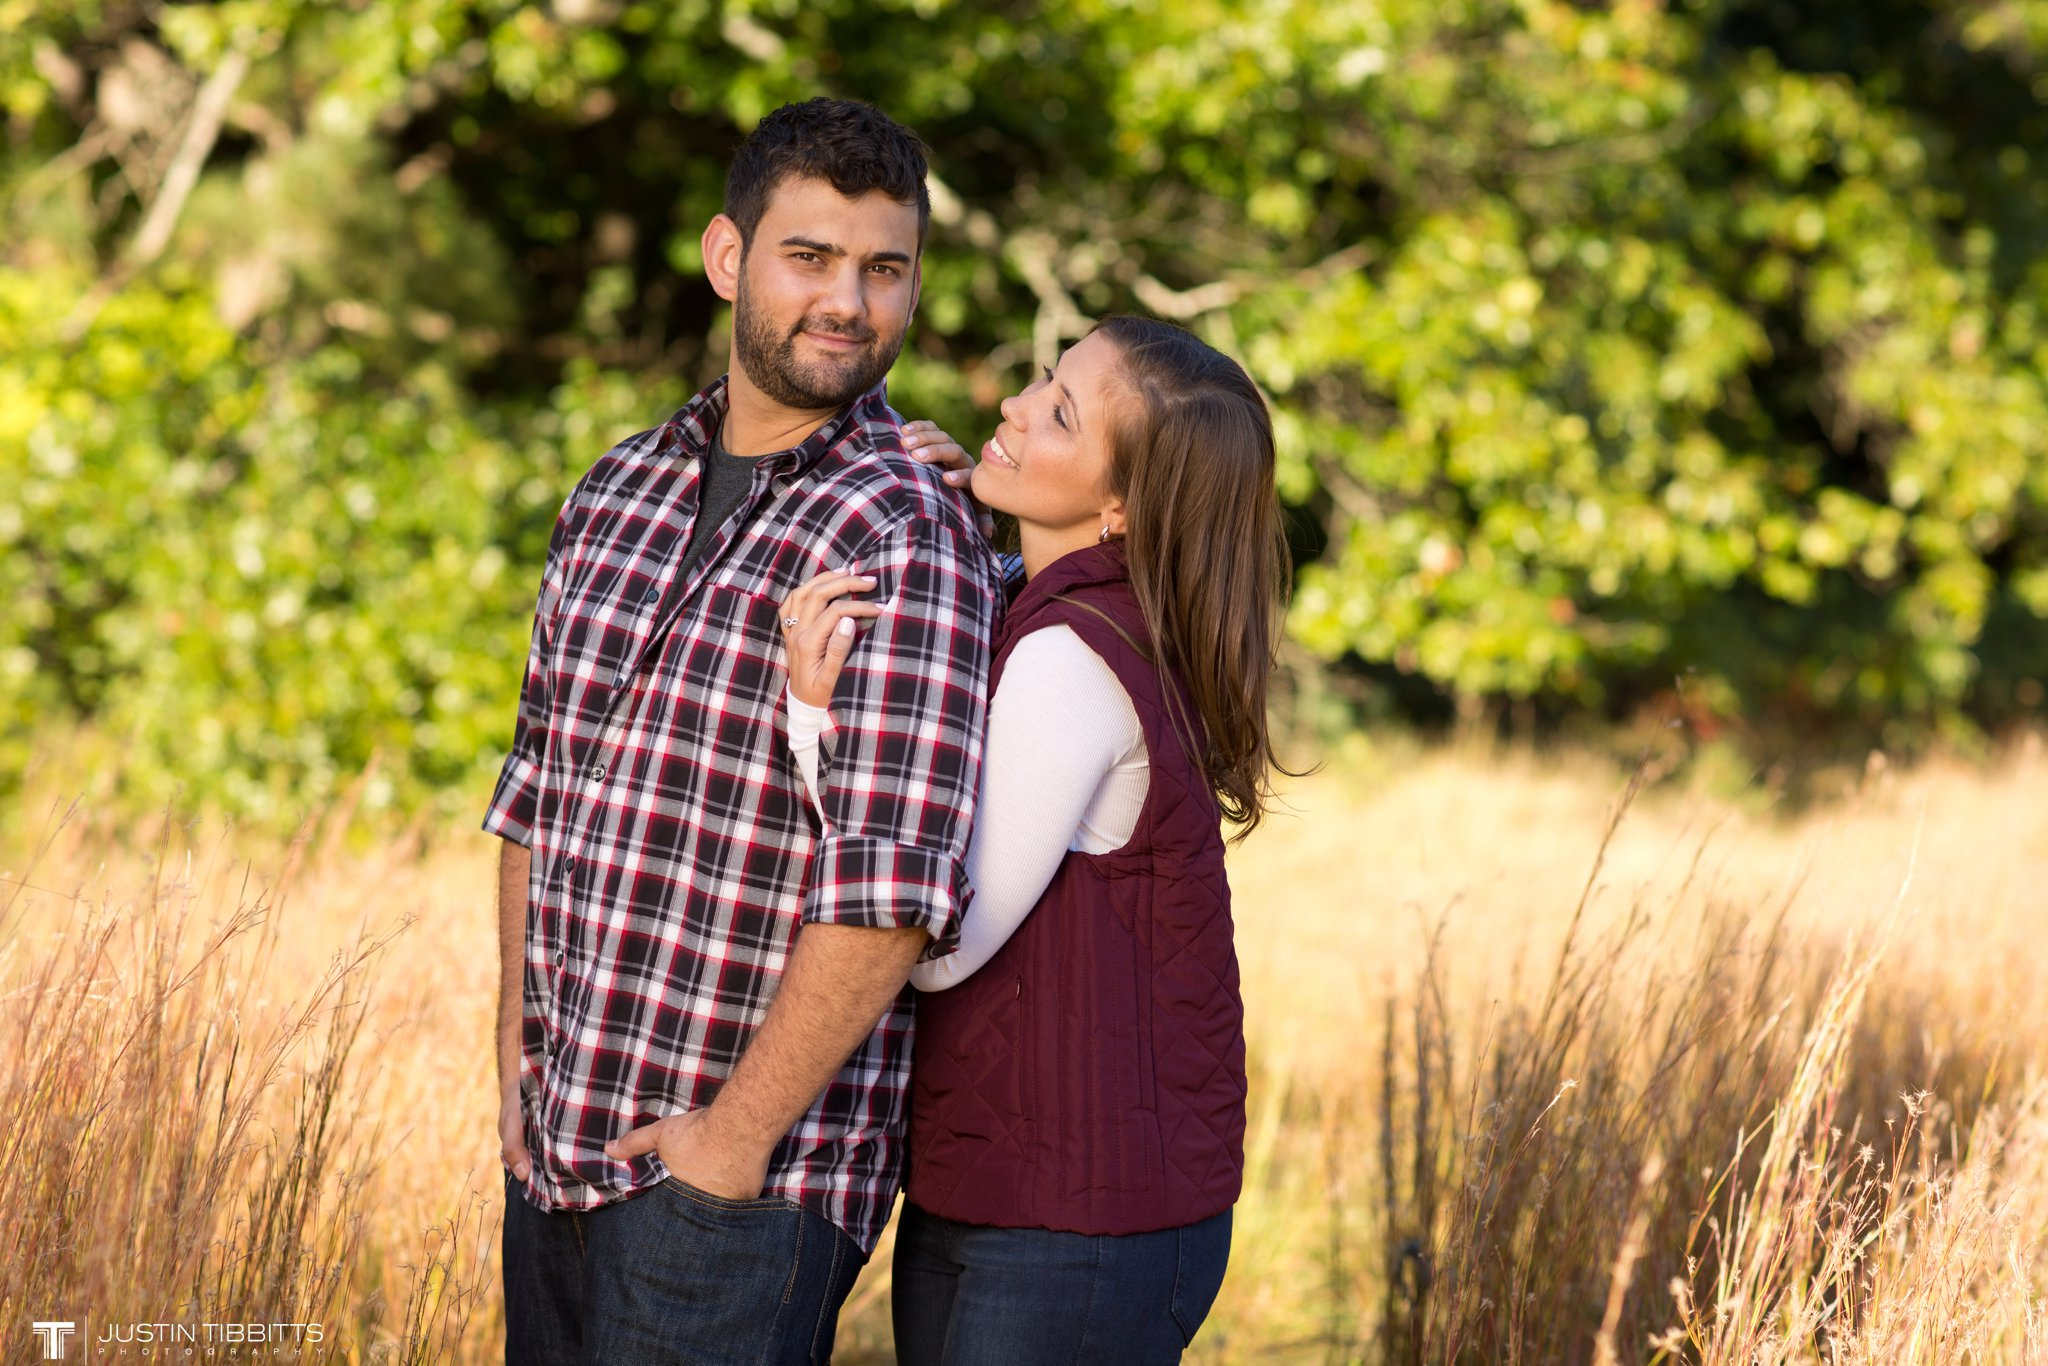 saratoga-springs-ny-engagement-shoot-with-nick-and-ciara_0021